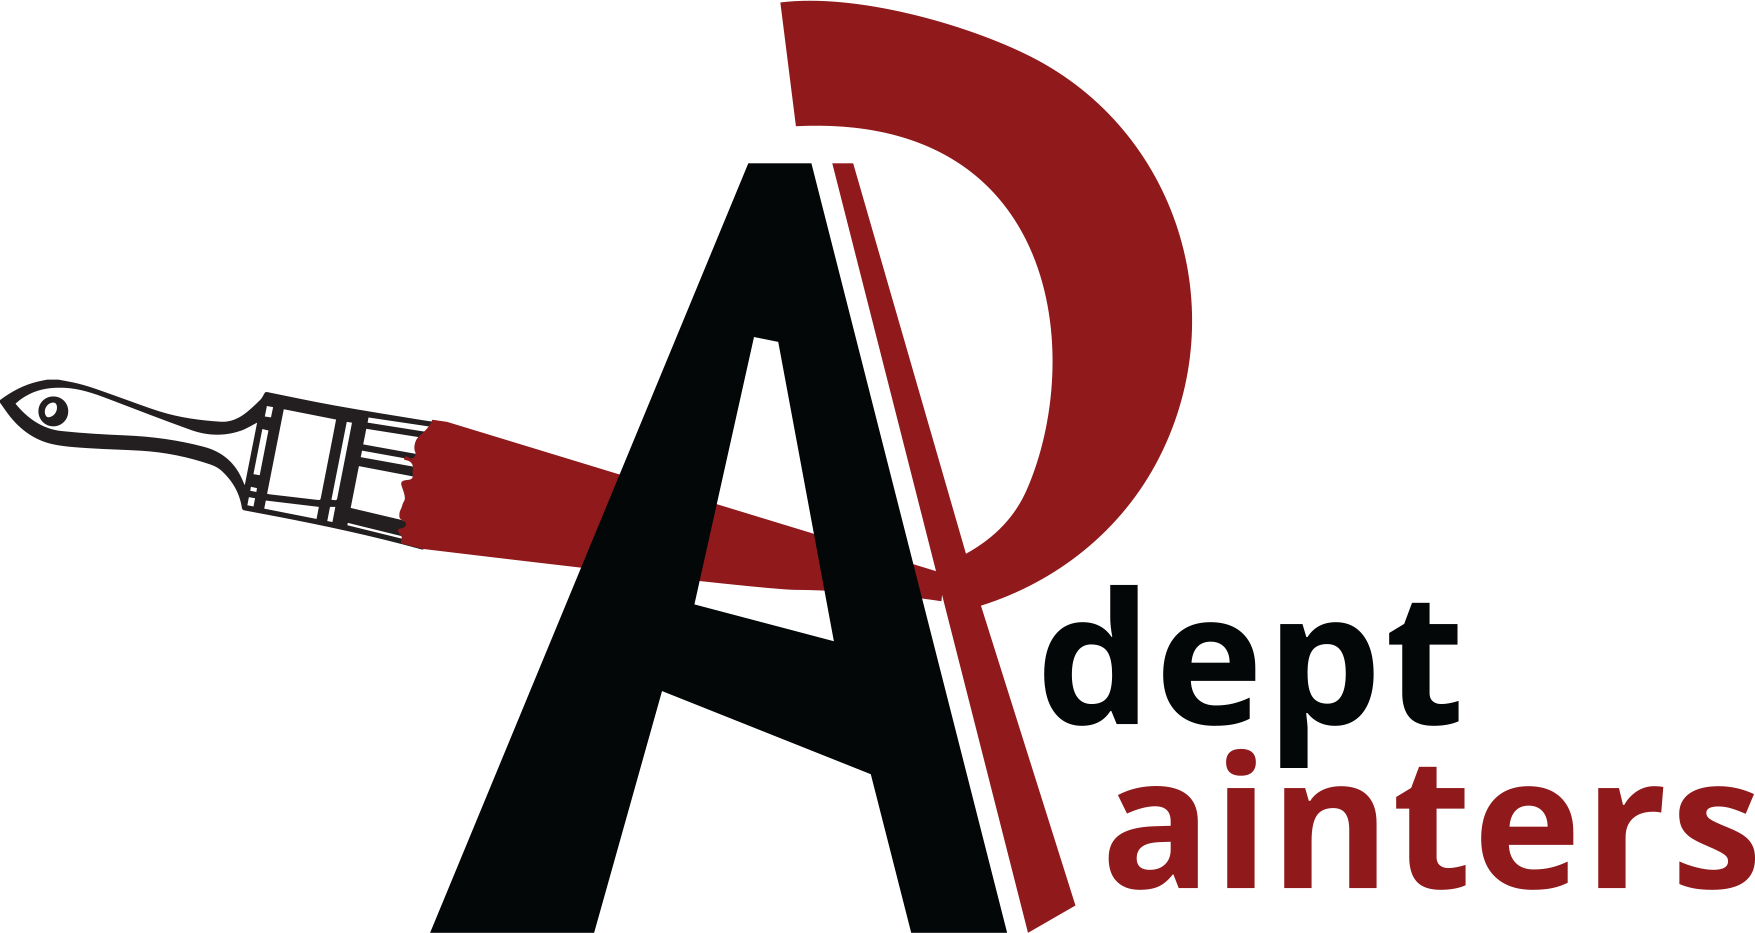 Professional painter logo house clipart jpg freeuse library Adept Painters LLC - Quality Painting & Restoration Contractor in ... jpg freeuse library